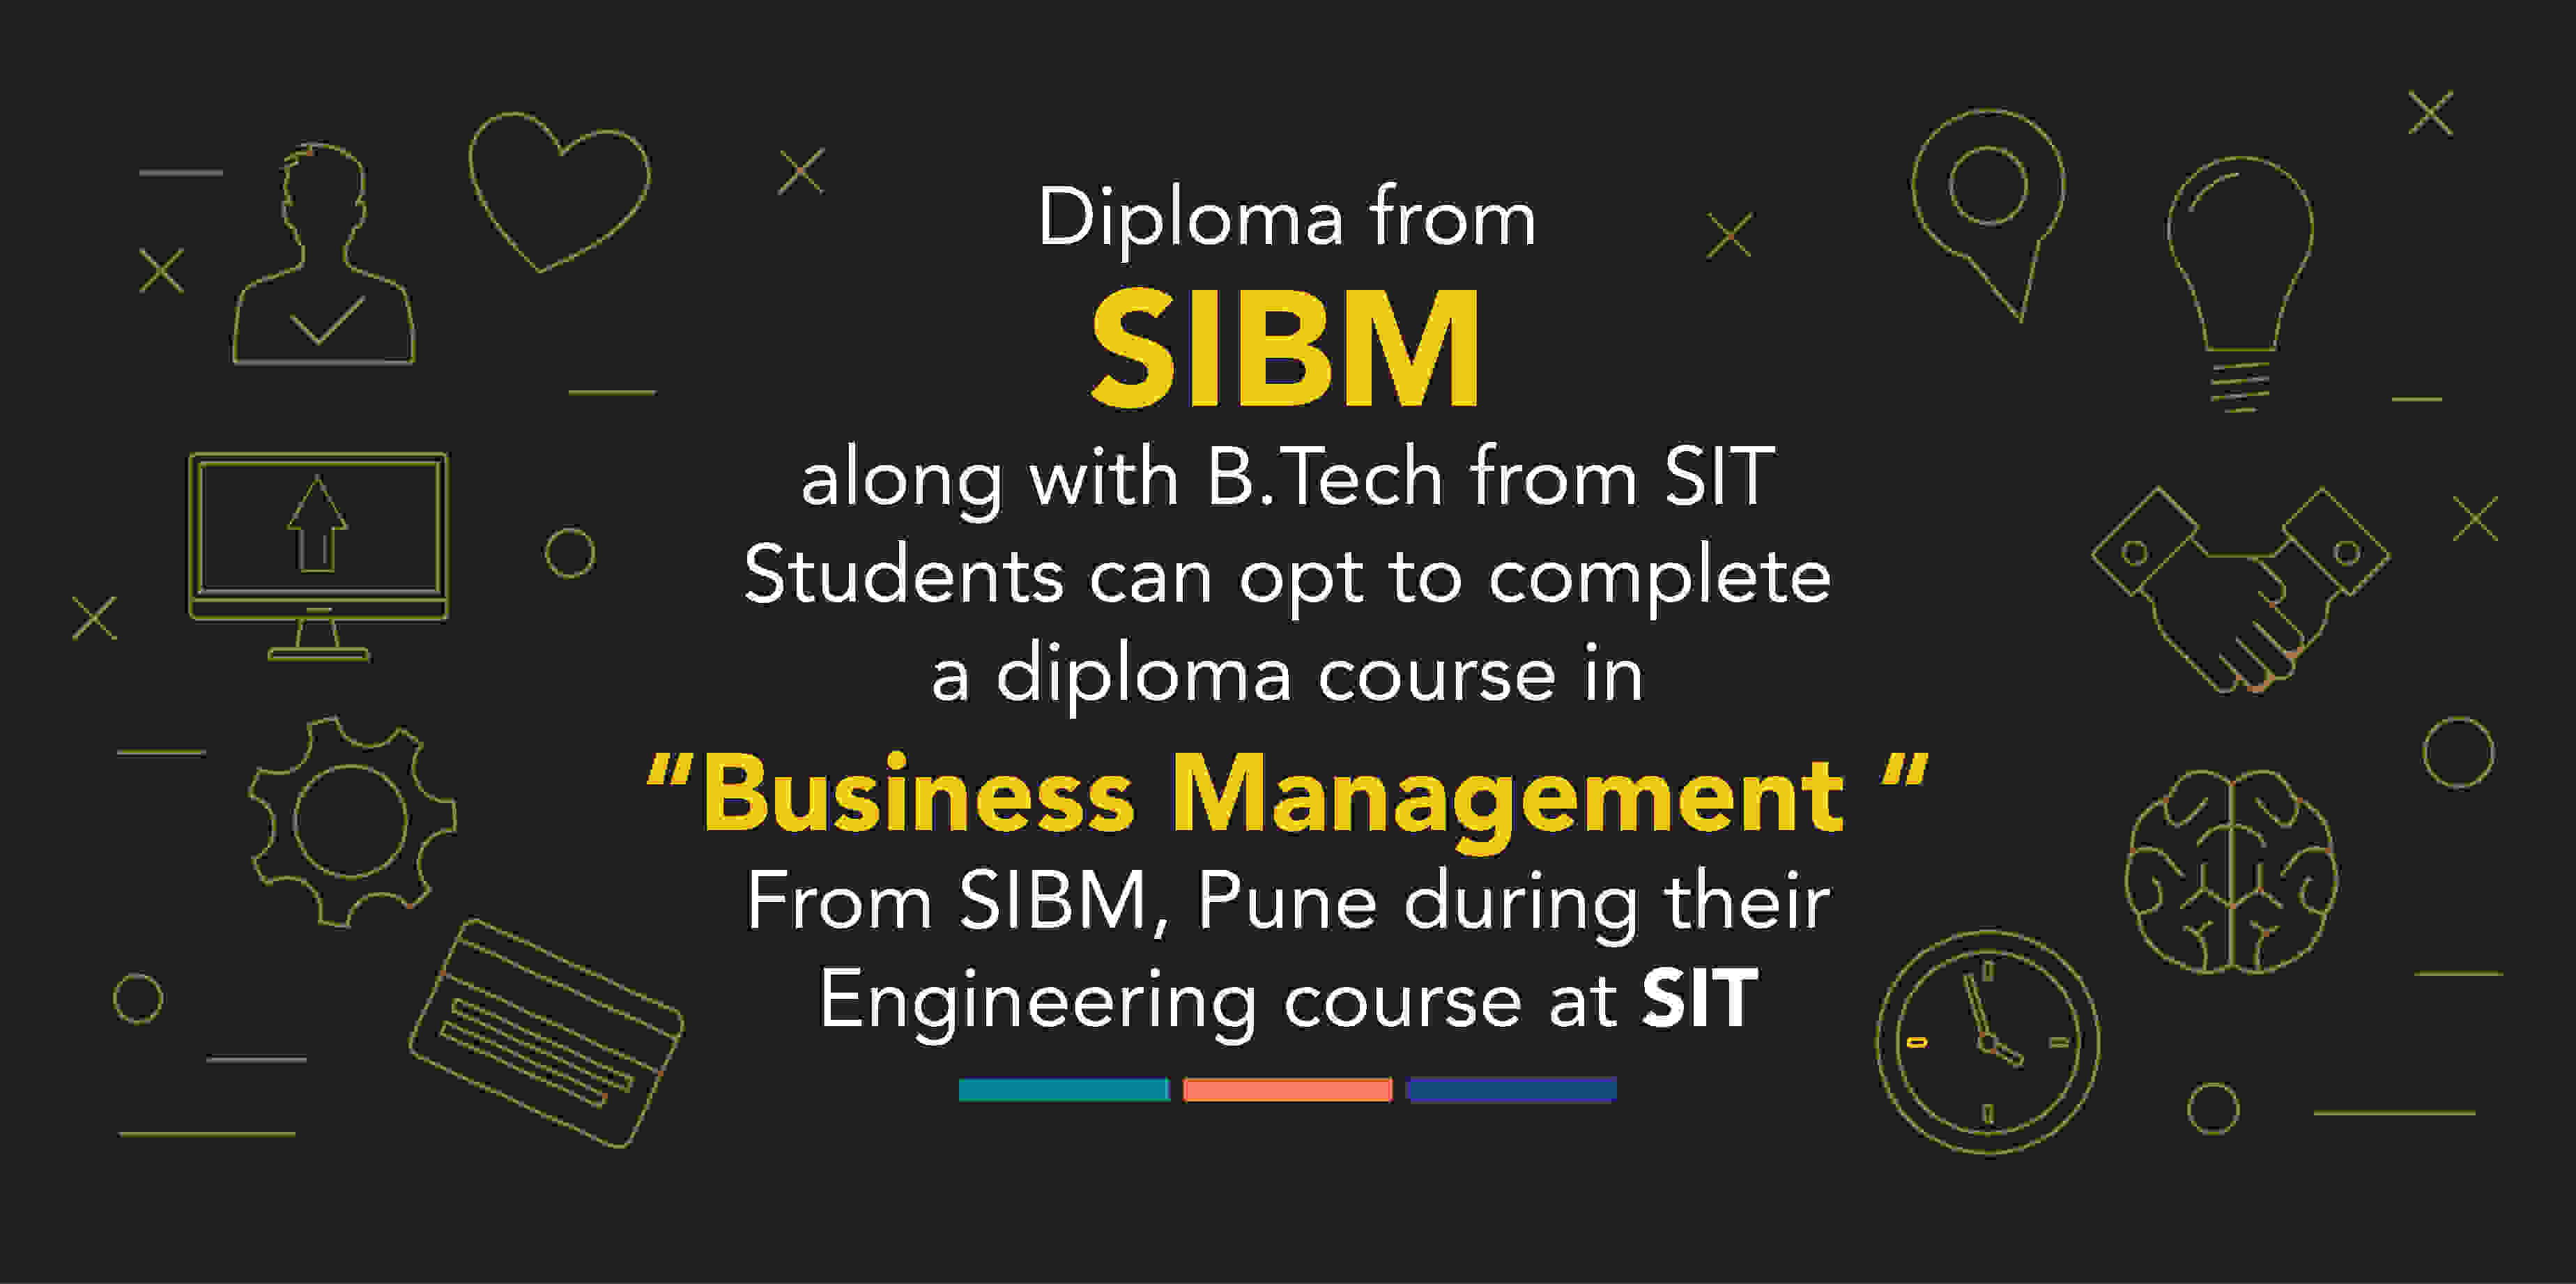 Engineering course at SIT Pune